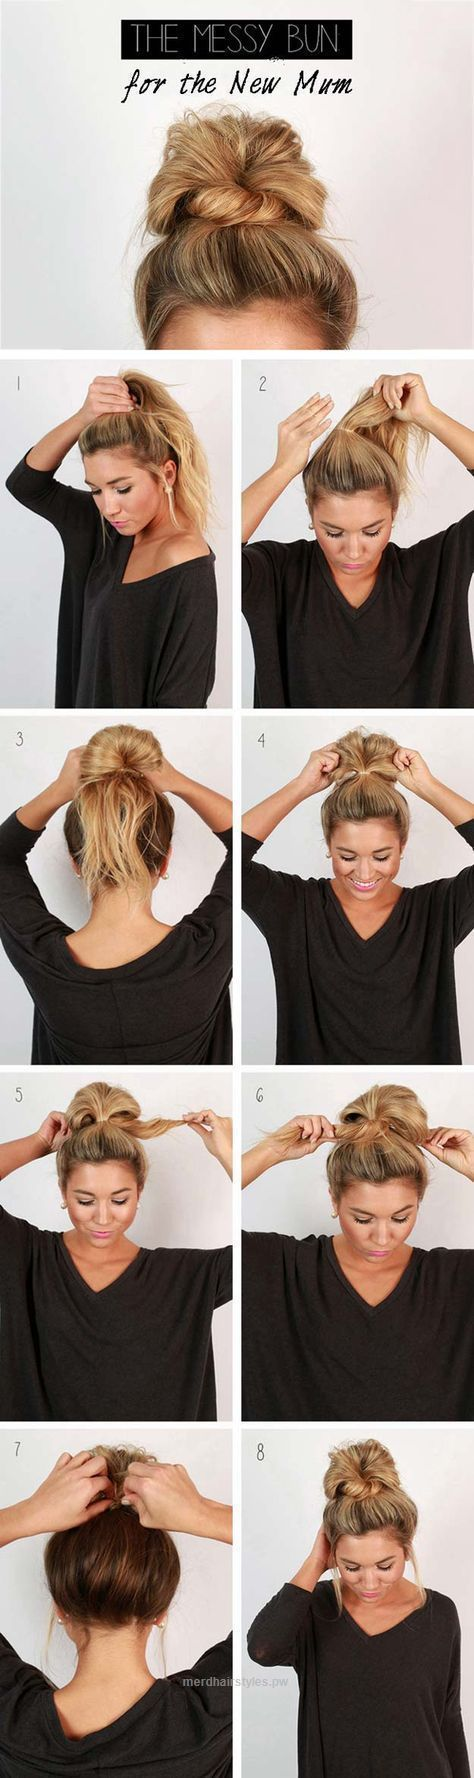 12 Super Easy Hairdos For Those Lazy Days Live Better Lifestyle Hair Styles Long Hair Styles Diy Hairstyles Easy